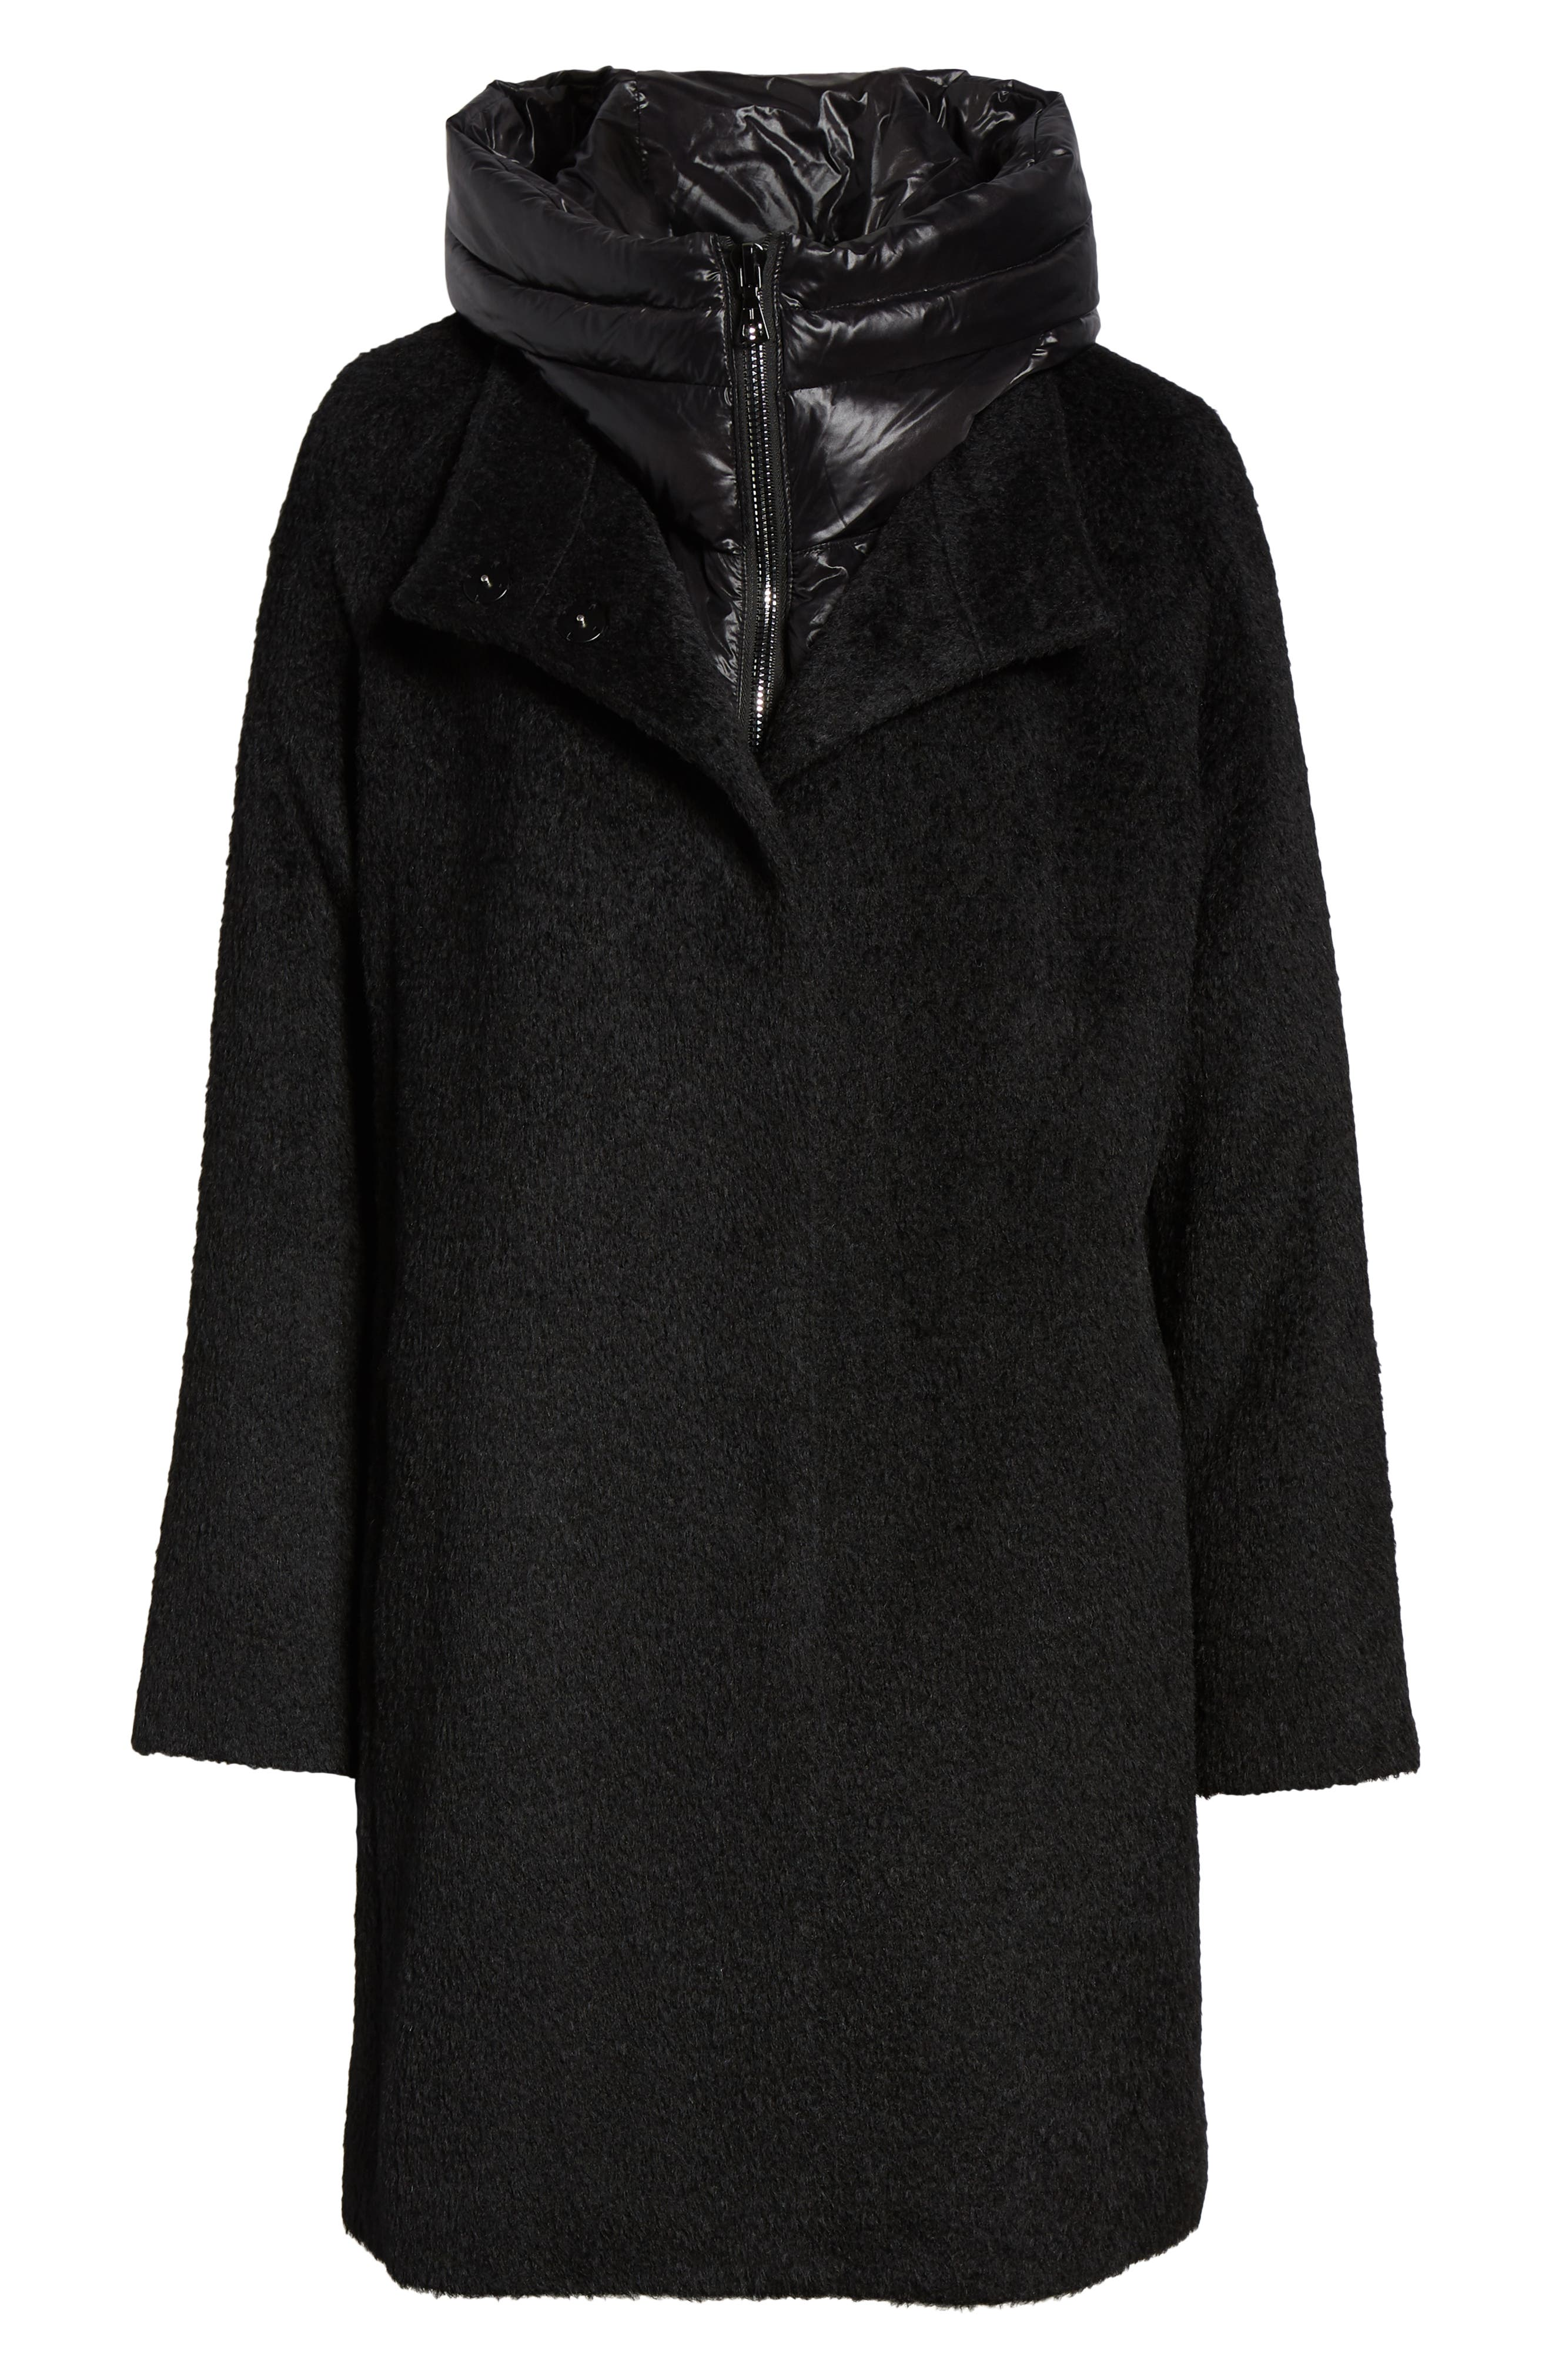 Coat with Hooded Bib,                             Alternate thumbnail 6, color,                             BLACK